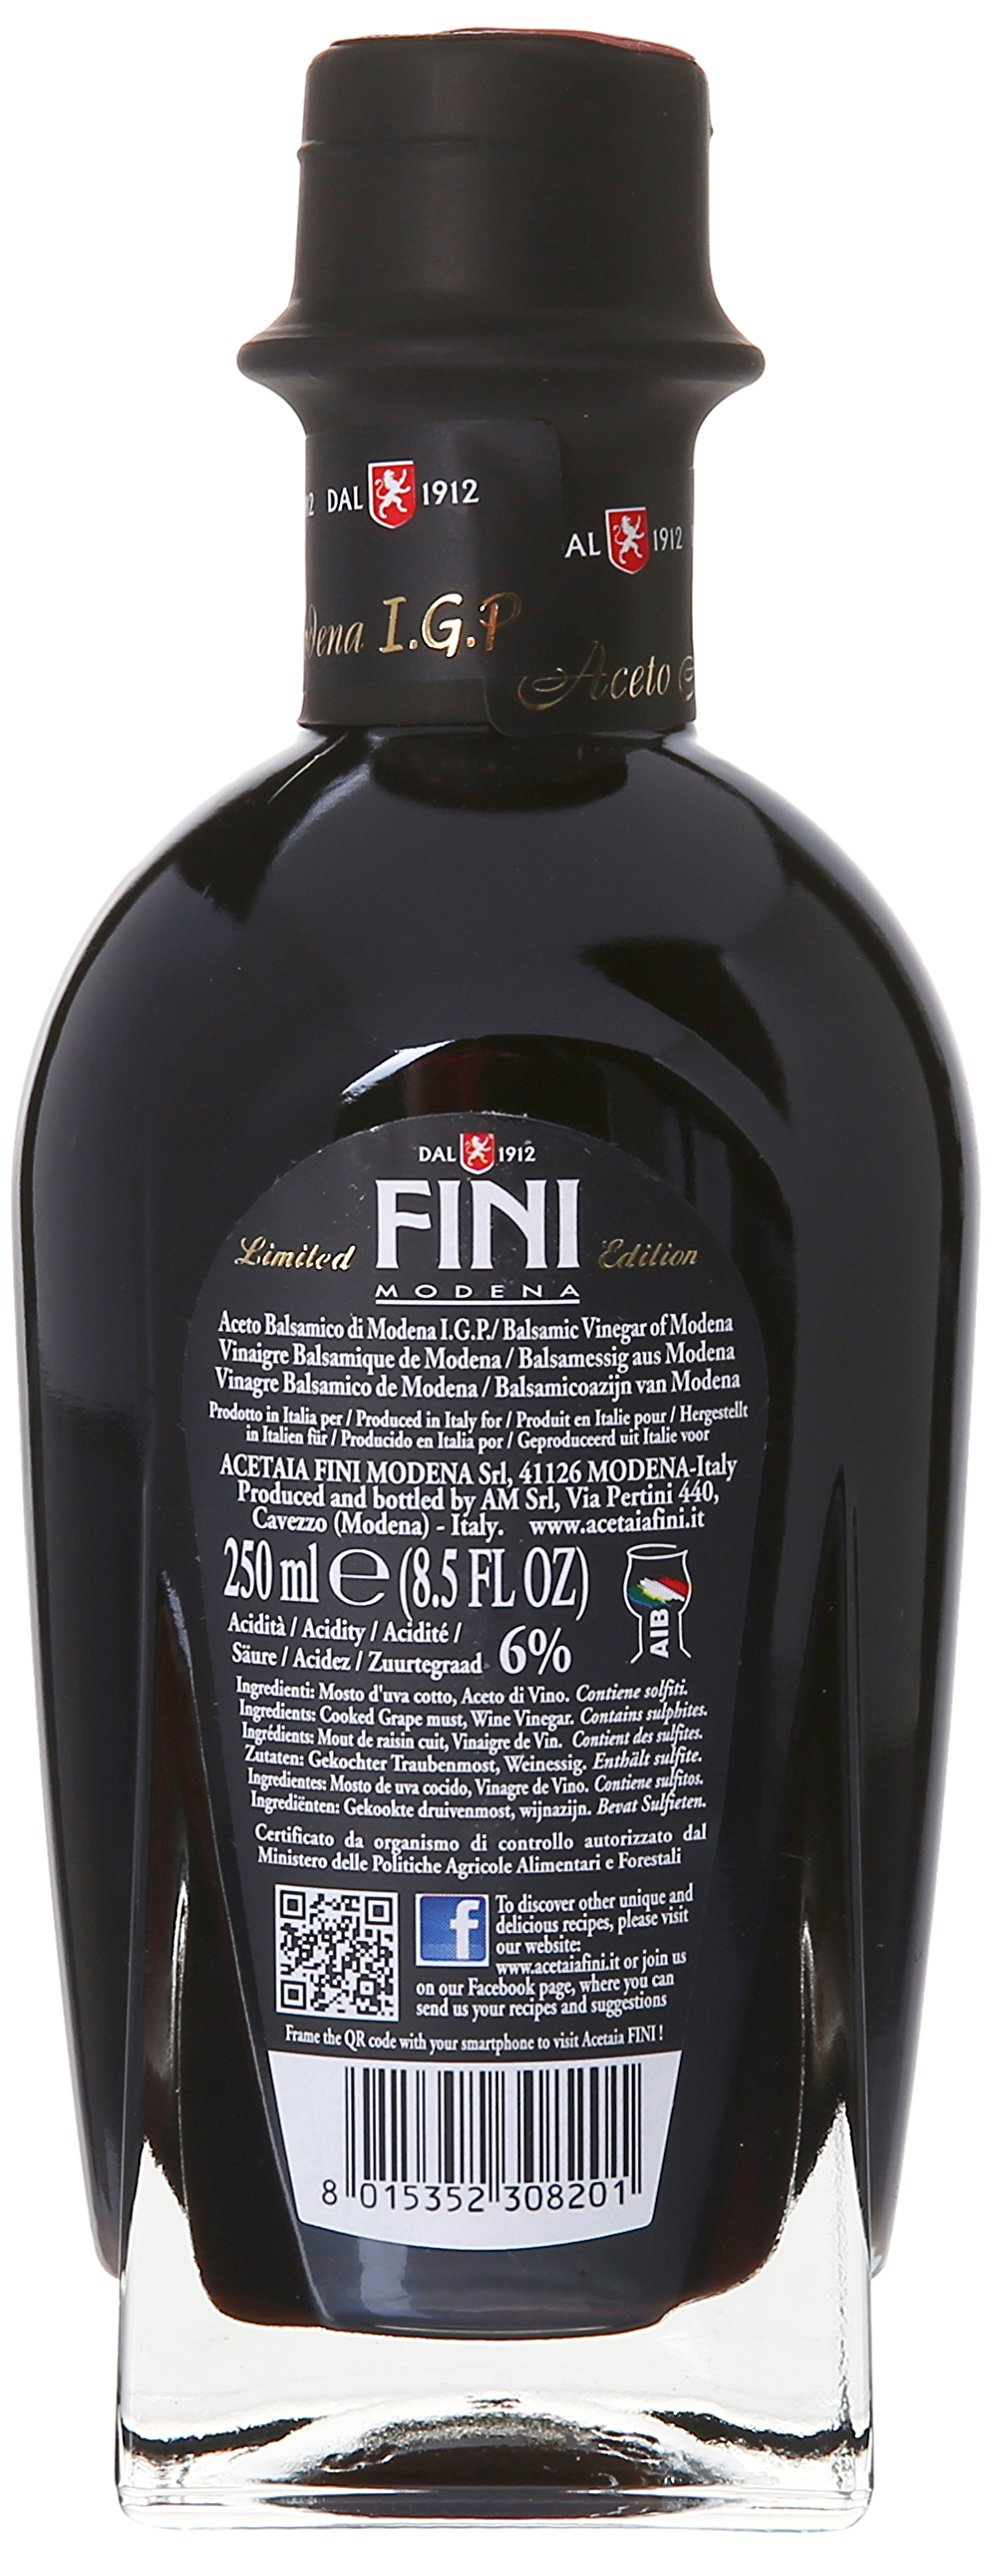 Fini Balsamic Vinegar Gift Box, 250 Mililiter 2 Limited addition bottle of Fini Balsamic Vinegar of Modena in a stylish gift box Makes for a unique and flavorful contribution to salad dressings or your favorite Italian dishes Perfect gift for the foodie in your life